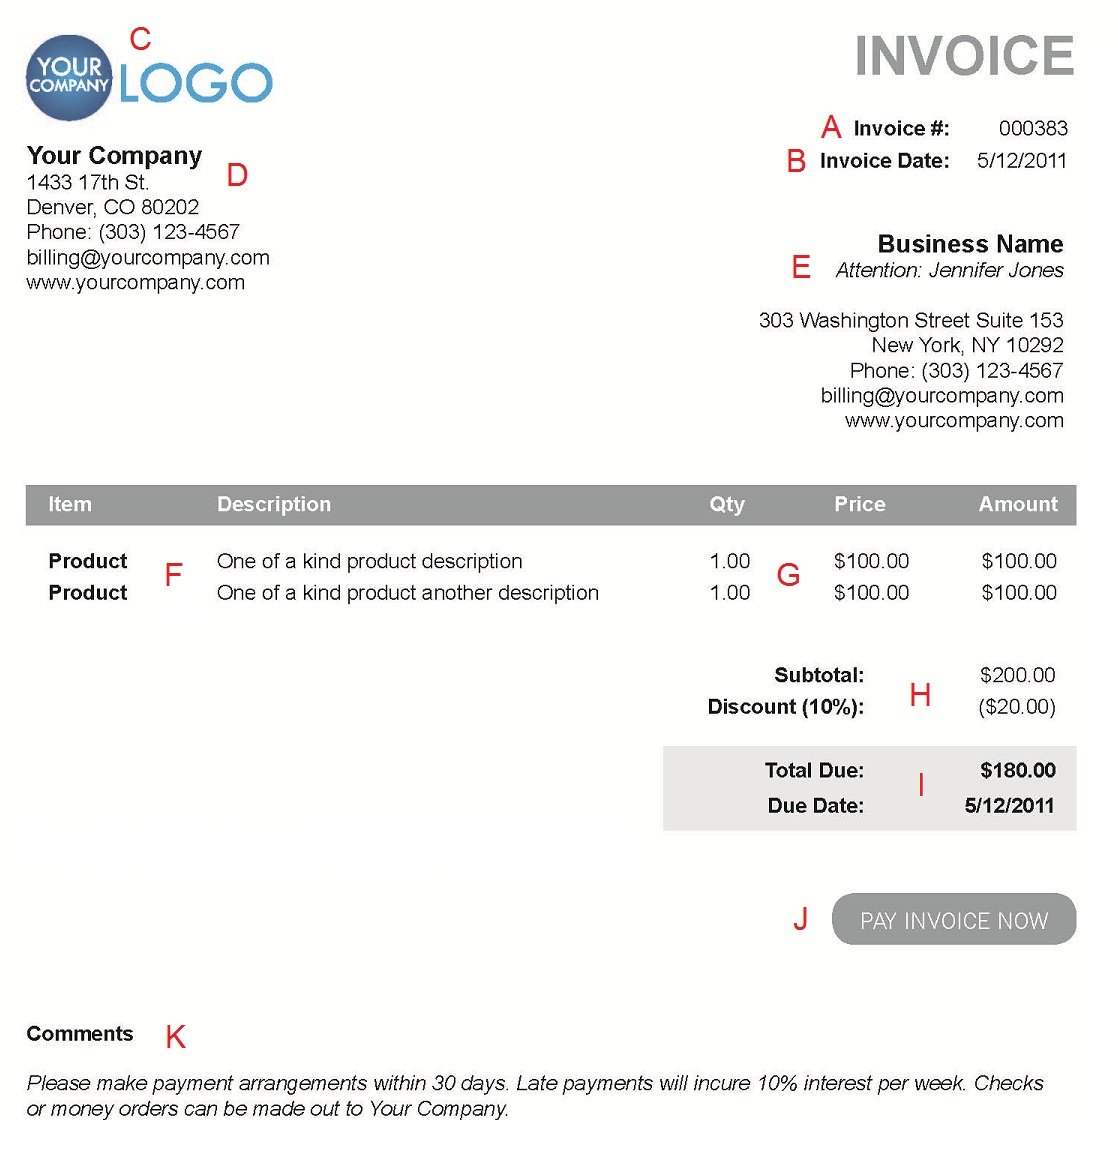 Shopdesignsus  Remarkable The  Different Sections Of An Electronic Payment Invoice With Gorgeous A  With Nice Duplicate Receipt Also Receipt Form Template In Addition Banana Republic Return Policy No Receipt And Enterprise Tolls Receipt As Well As Federal Tax Receipts Additionally Burger King Receipt From Paysimplecom With Shopdesignsus  Gorgeous The  Different Sections Of An Electronic Payment Invoice With Nice A  And Remarkable Duplicate Receipt Also Receipt Form Template In Addition Banana Republic Return Policy No Receipt From Paysimplecom